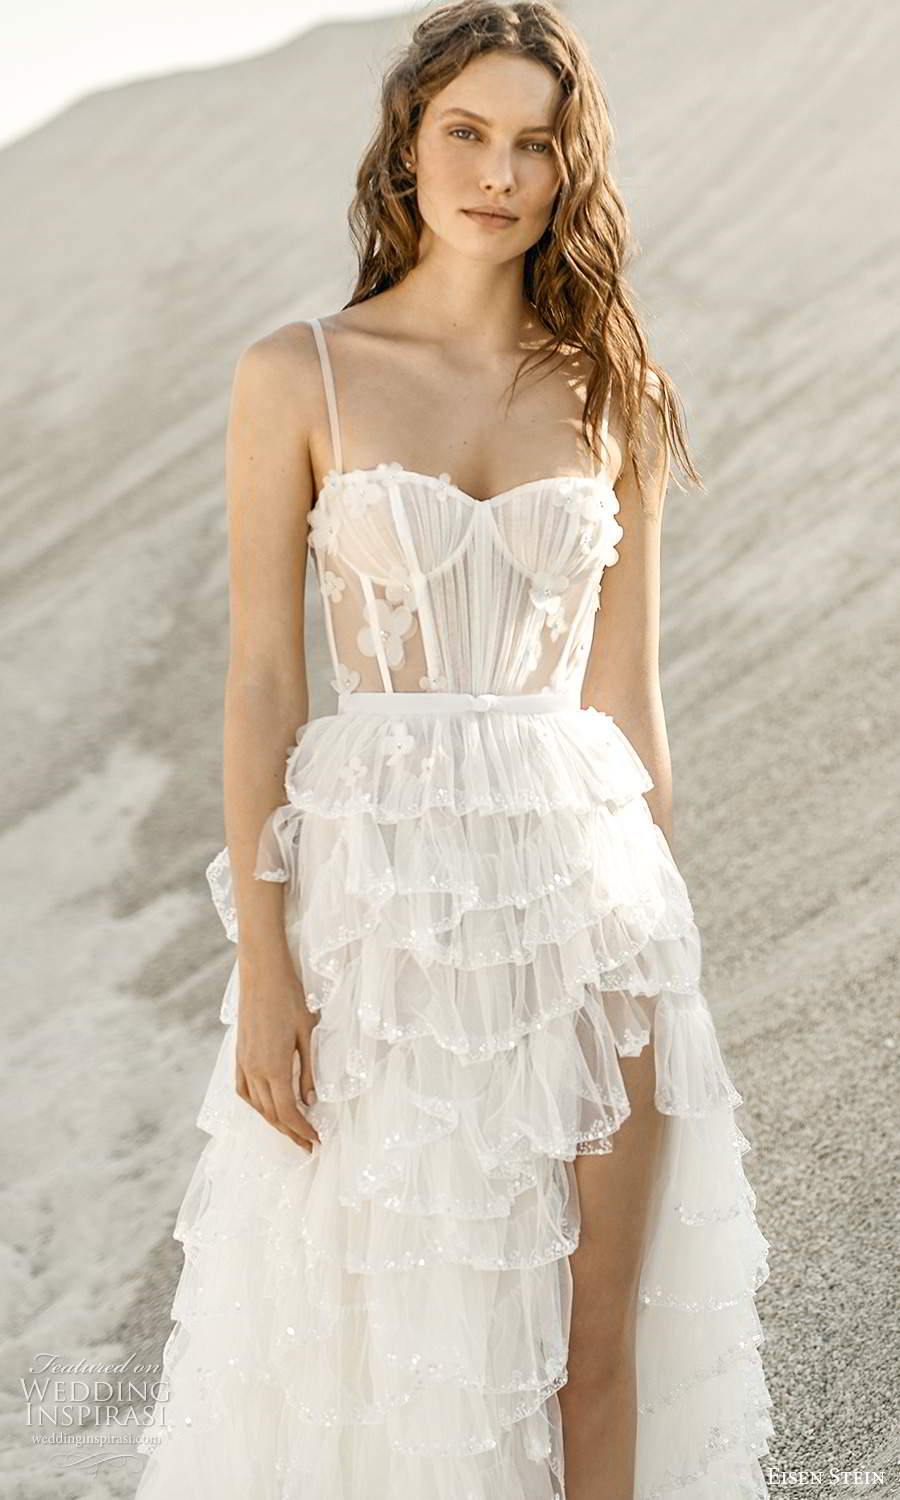 eisen stein fall 2021 bridal sleeveless thing straps semi sweetheart ruched bodice a line ball gown wedding dress tiered slit skirt chapel train (5) zv